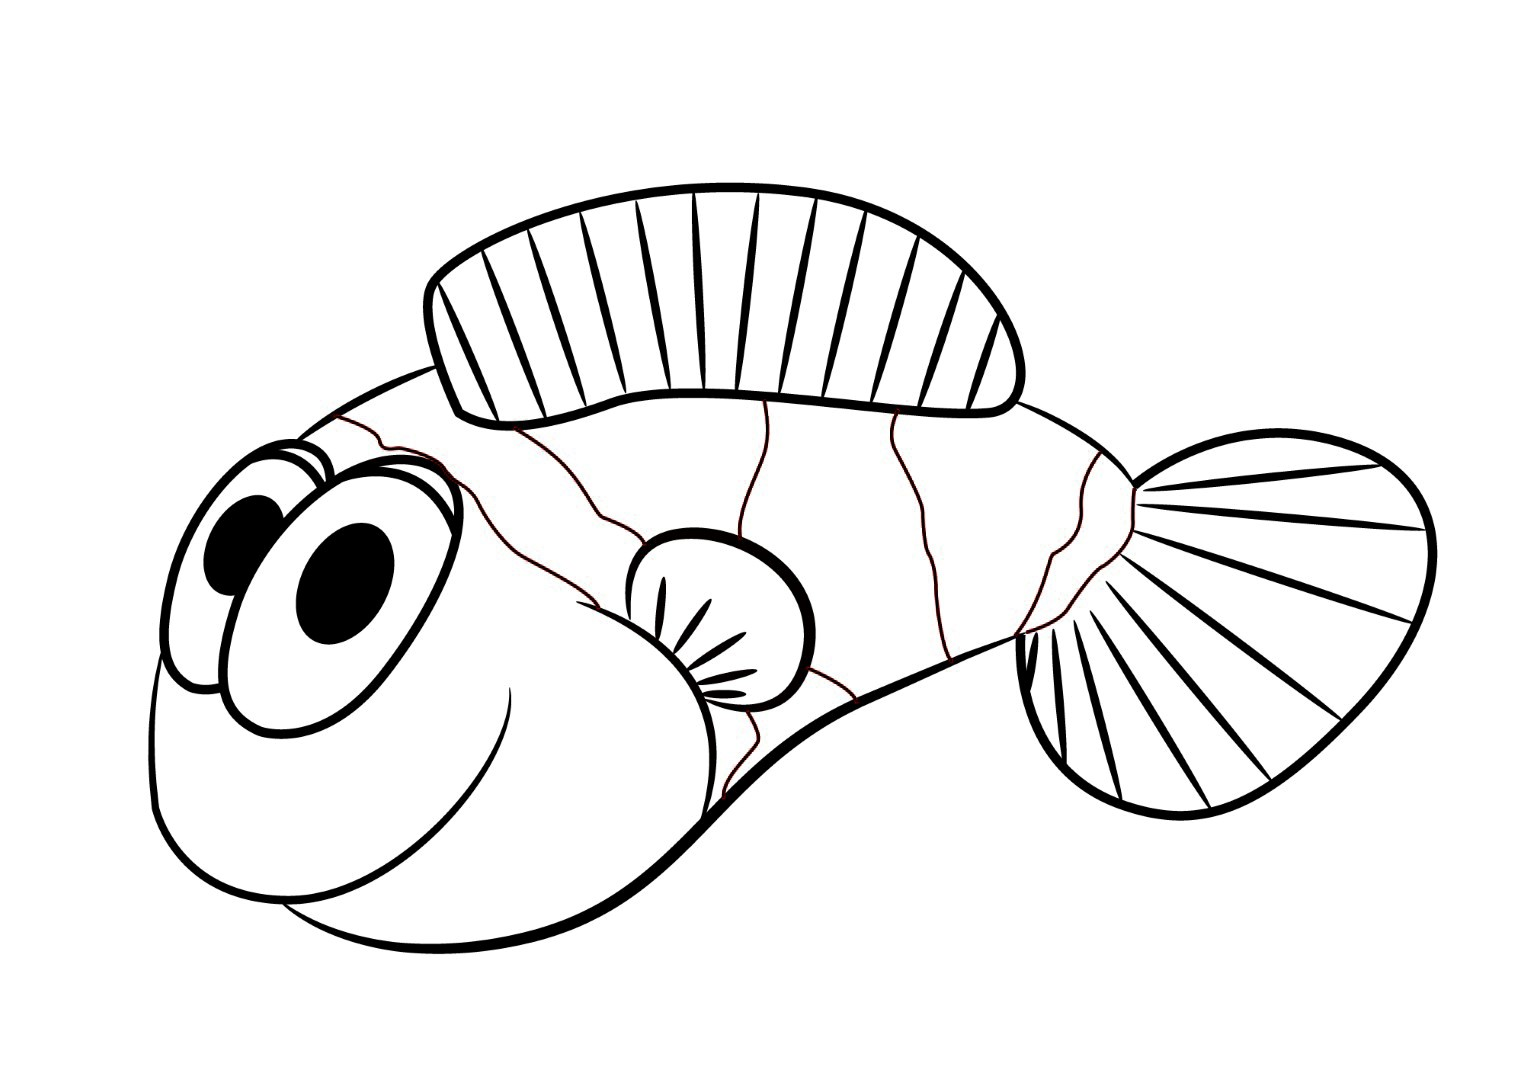 Worksheet. Coloring Pages Clown Fish Coloring Page Breadedcat Free